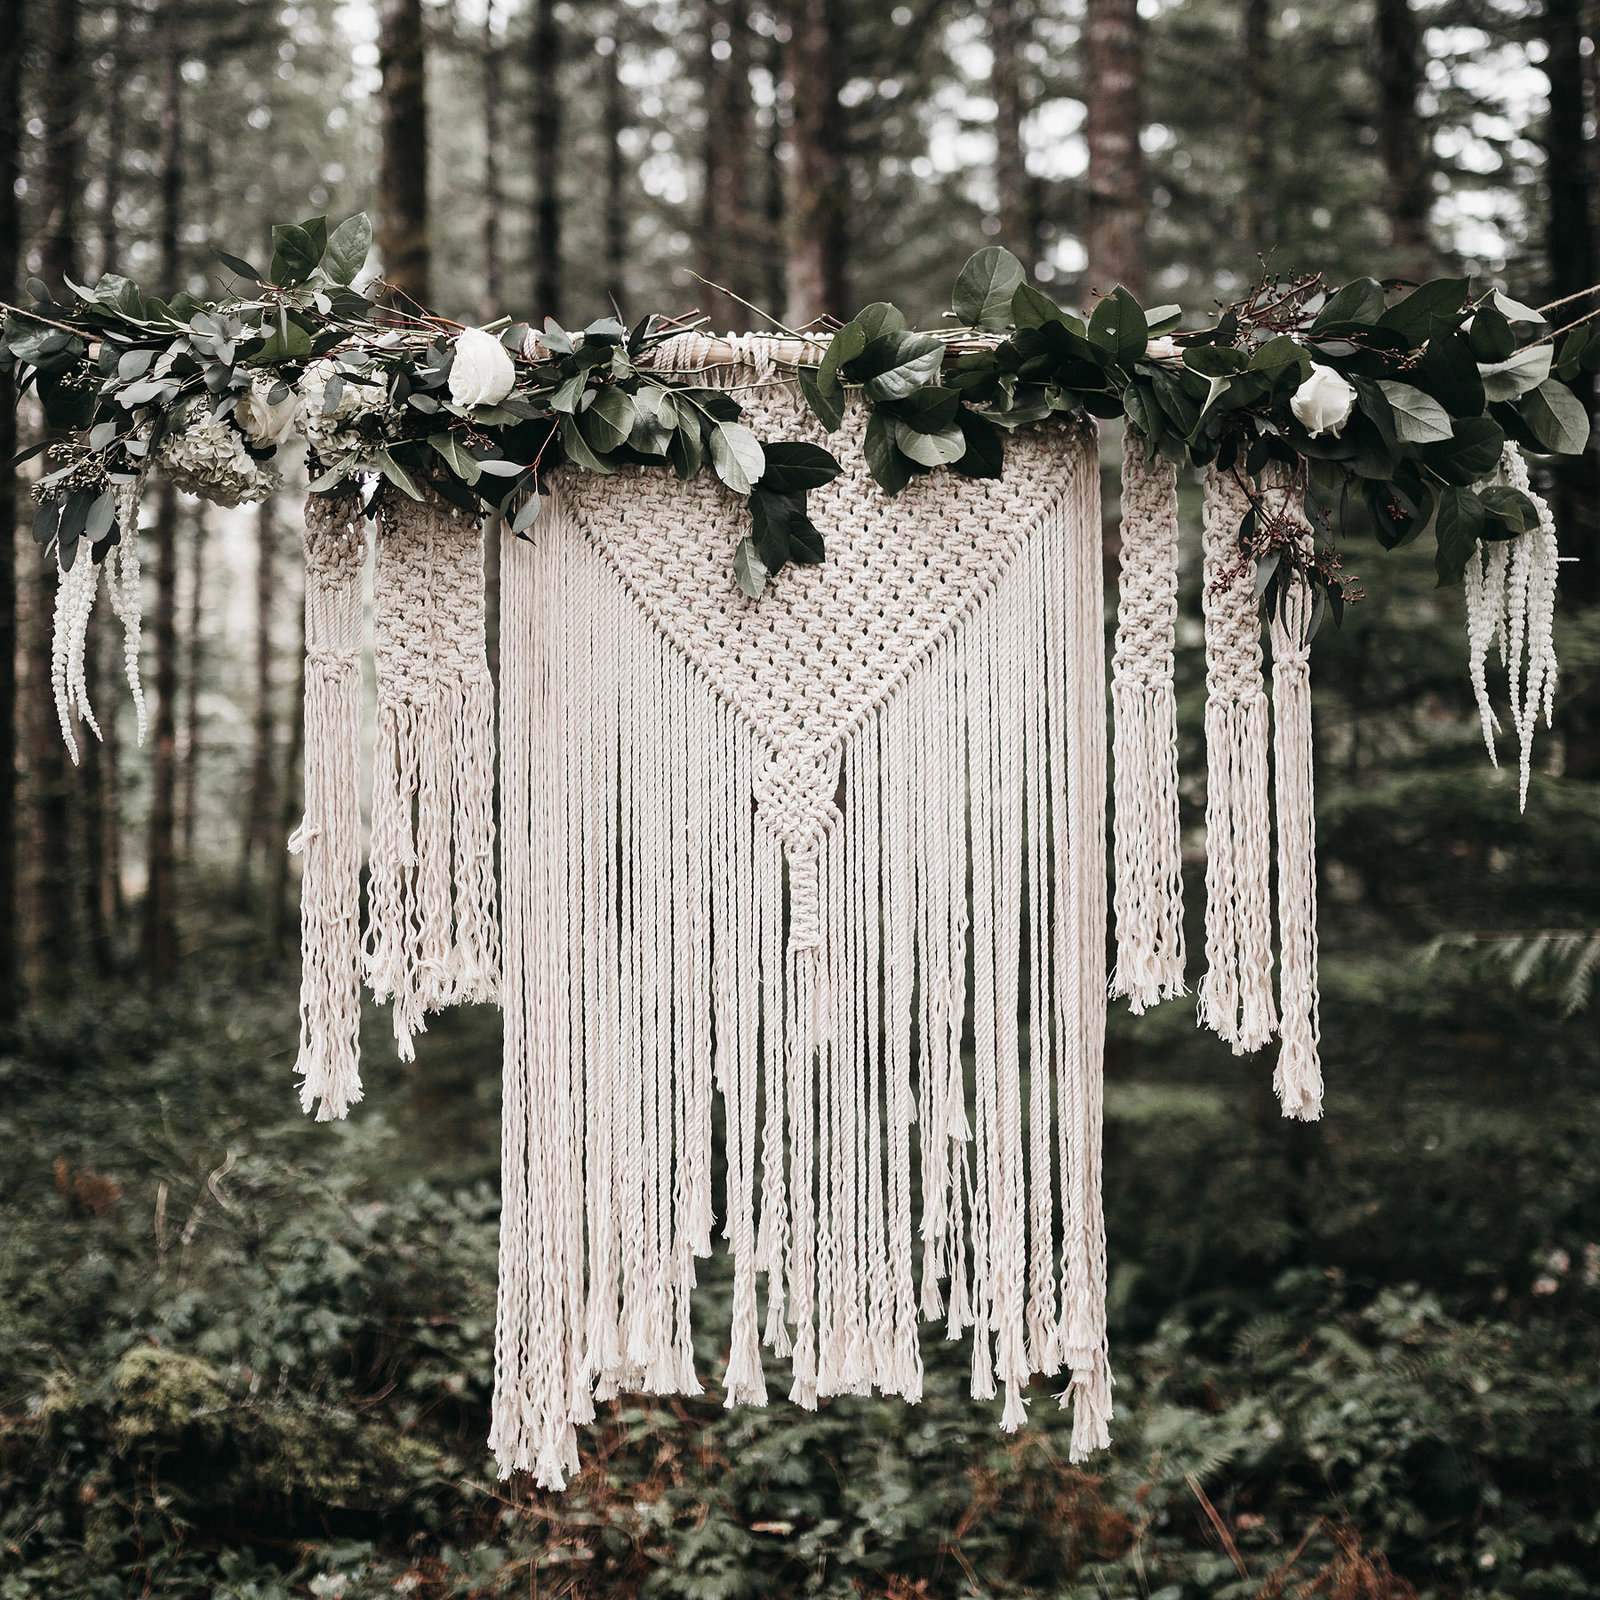 white-magazine-athena-camron-seattle-oregon-wedding-photography-woodlands-house-boho-elopement-inspiration-29